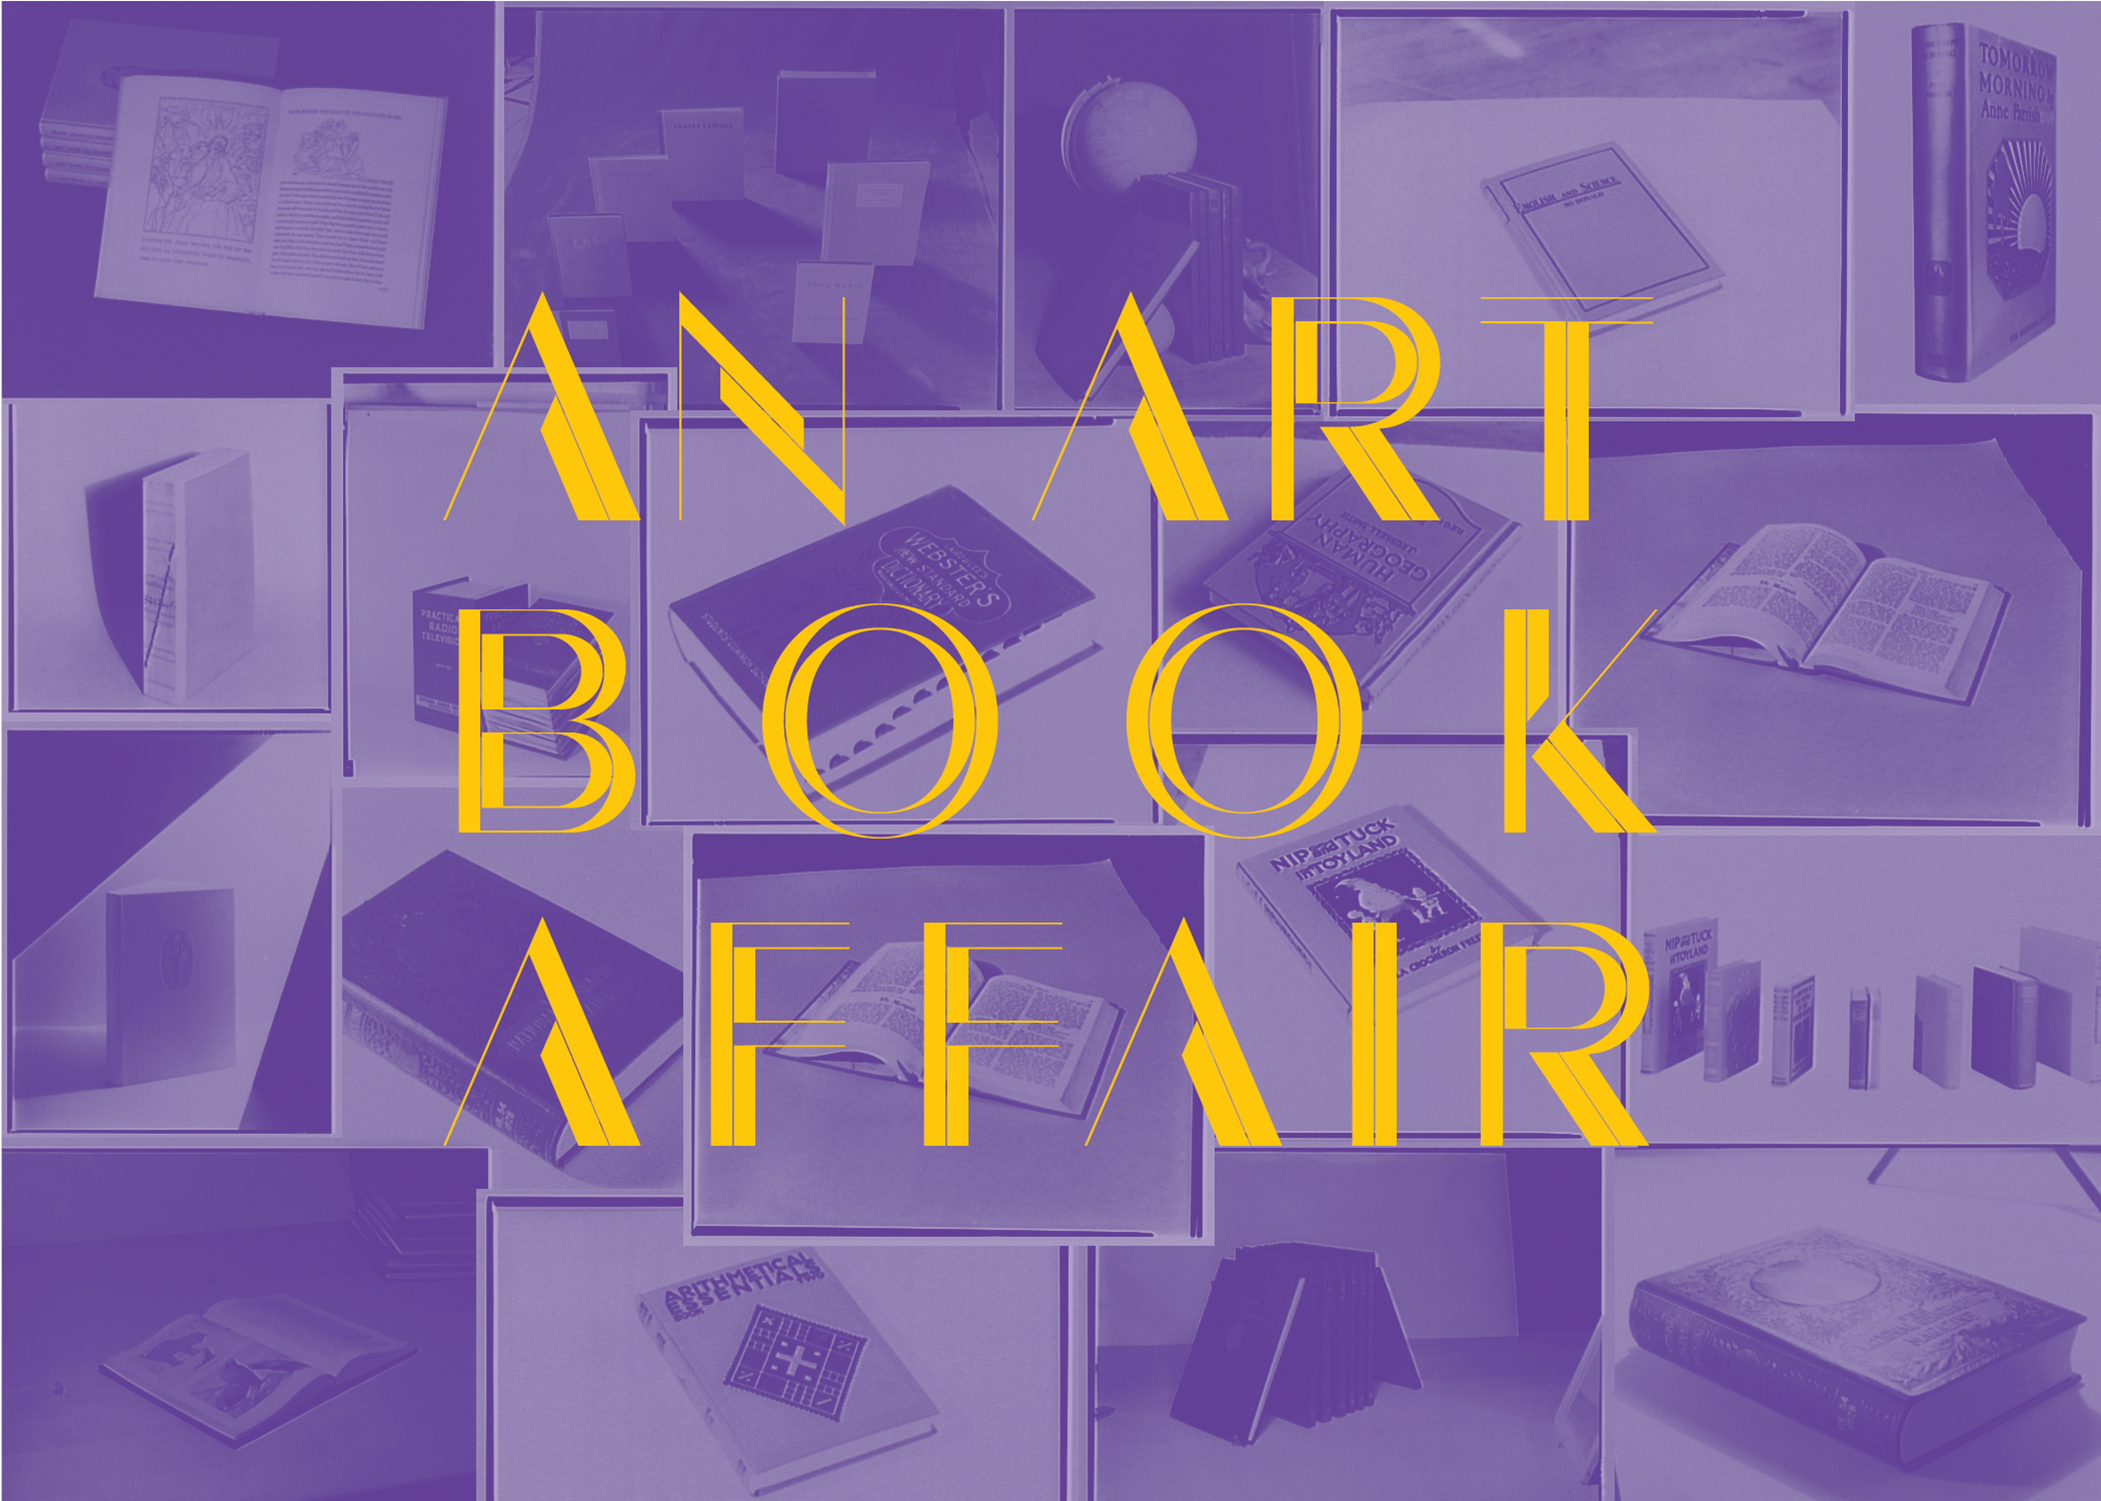 Columbus' first art book fair, An Art Book Affair, at CCAD's Beeler Gallery